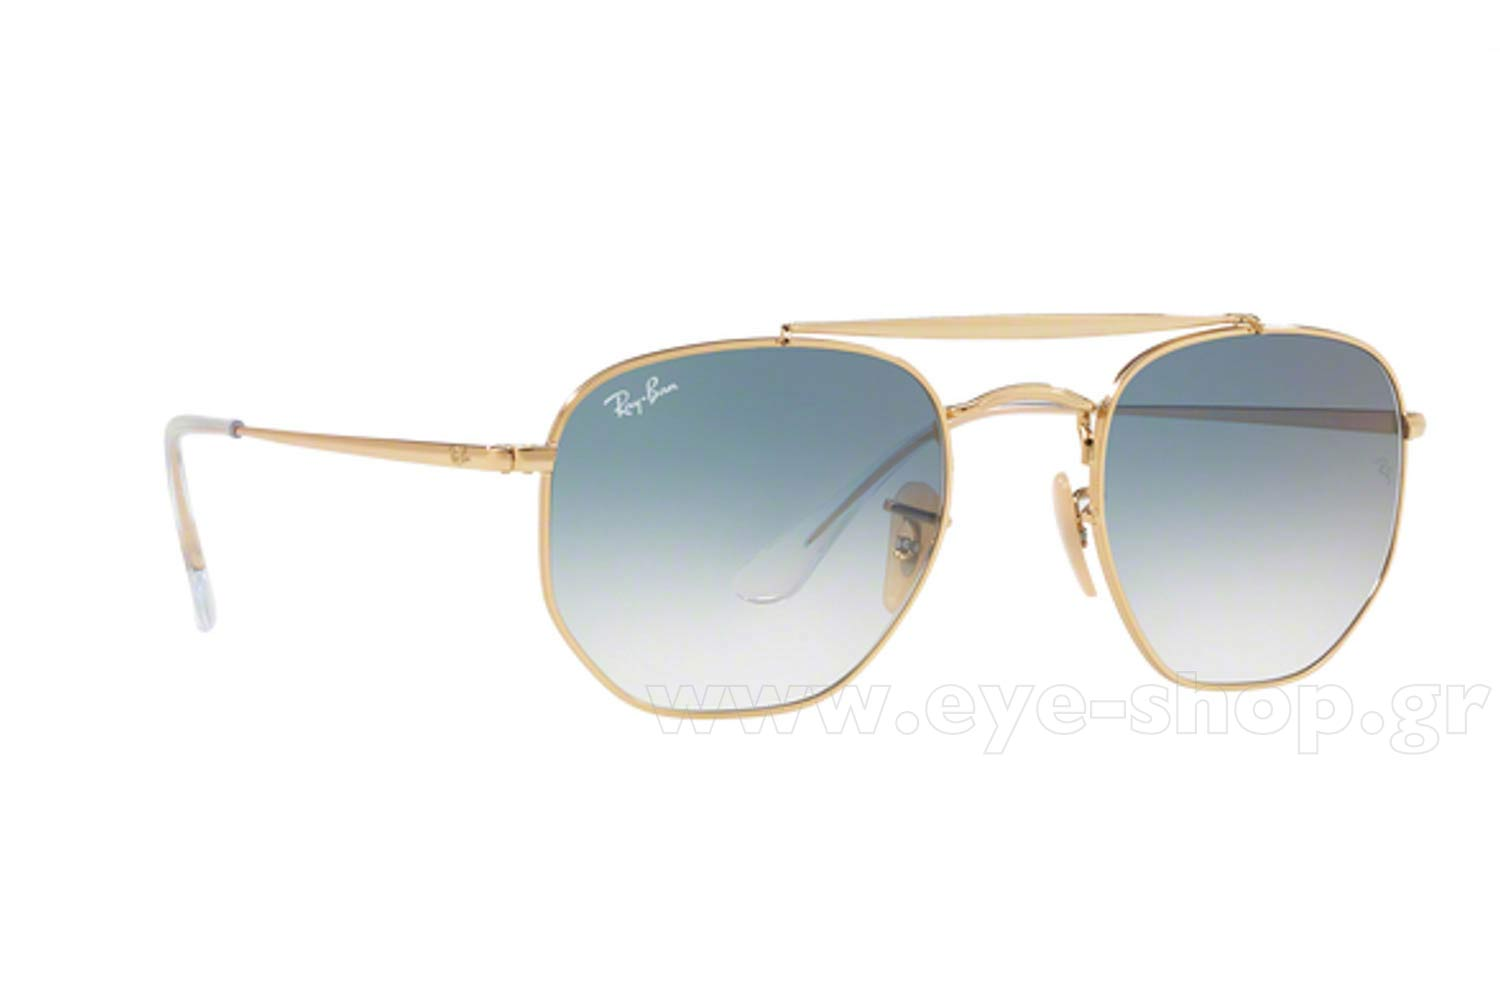 33e670df4e SUNGLASSES Rayban 3648 THE MARSHAL 001 3F Hexagonal Double Bridge